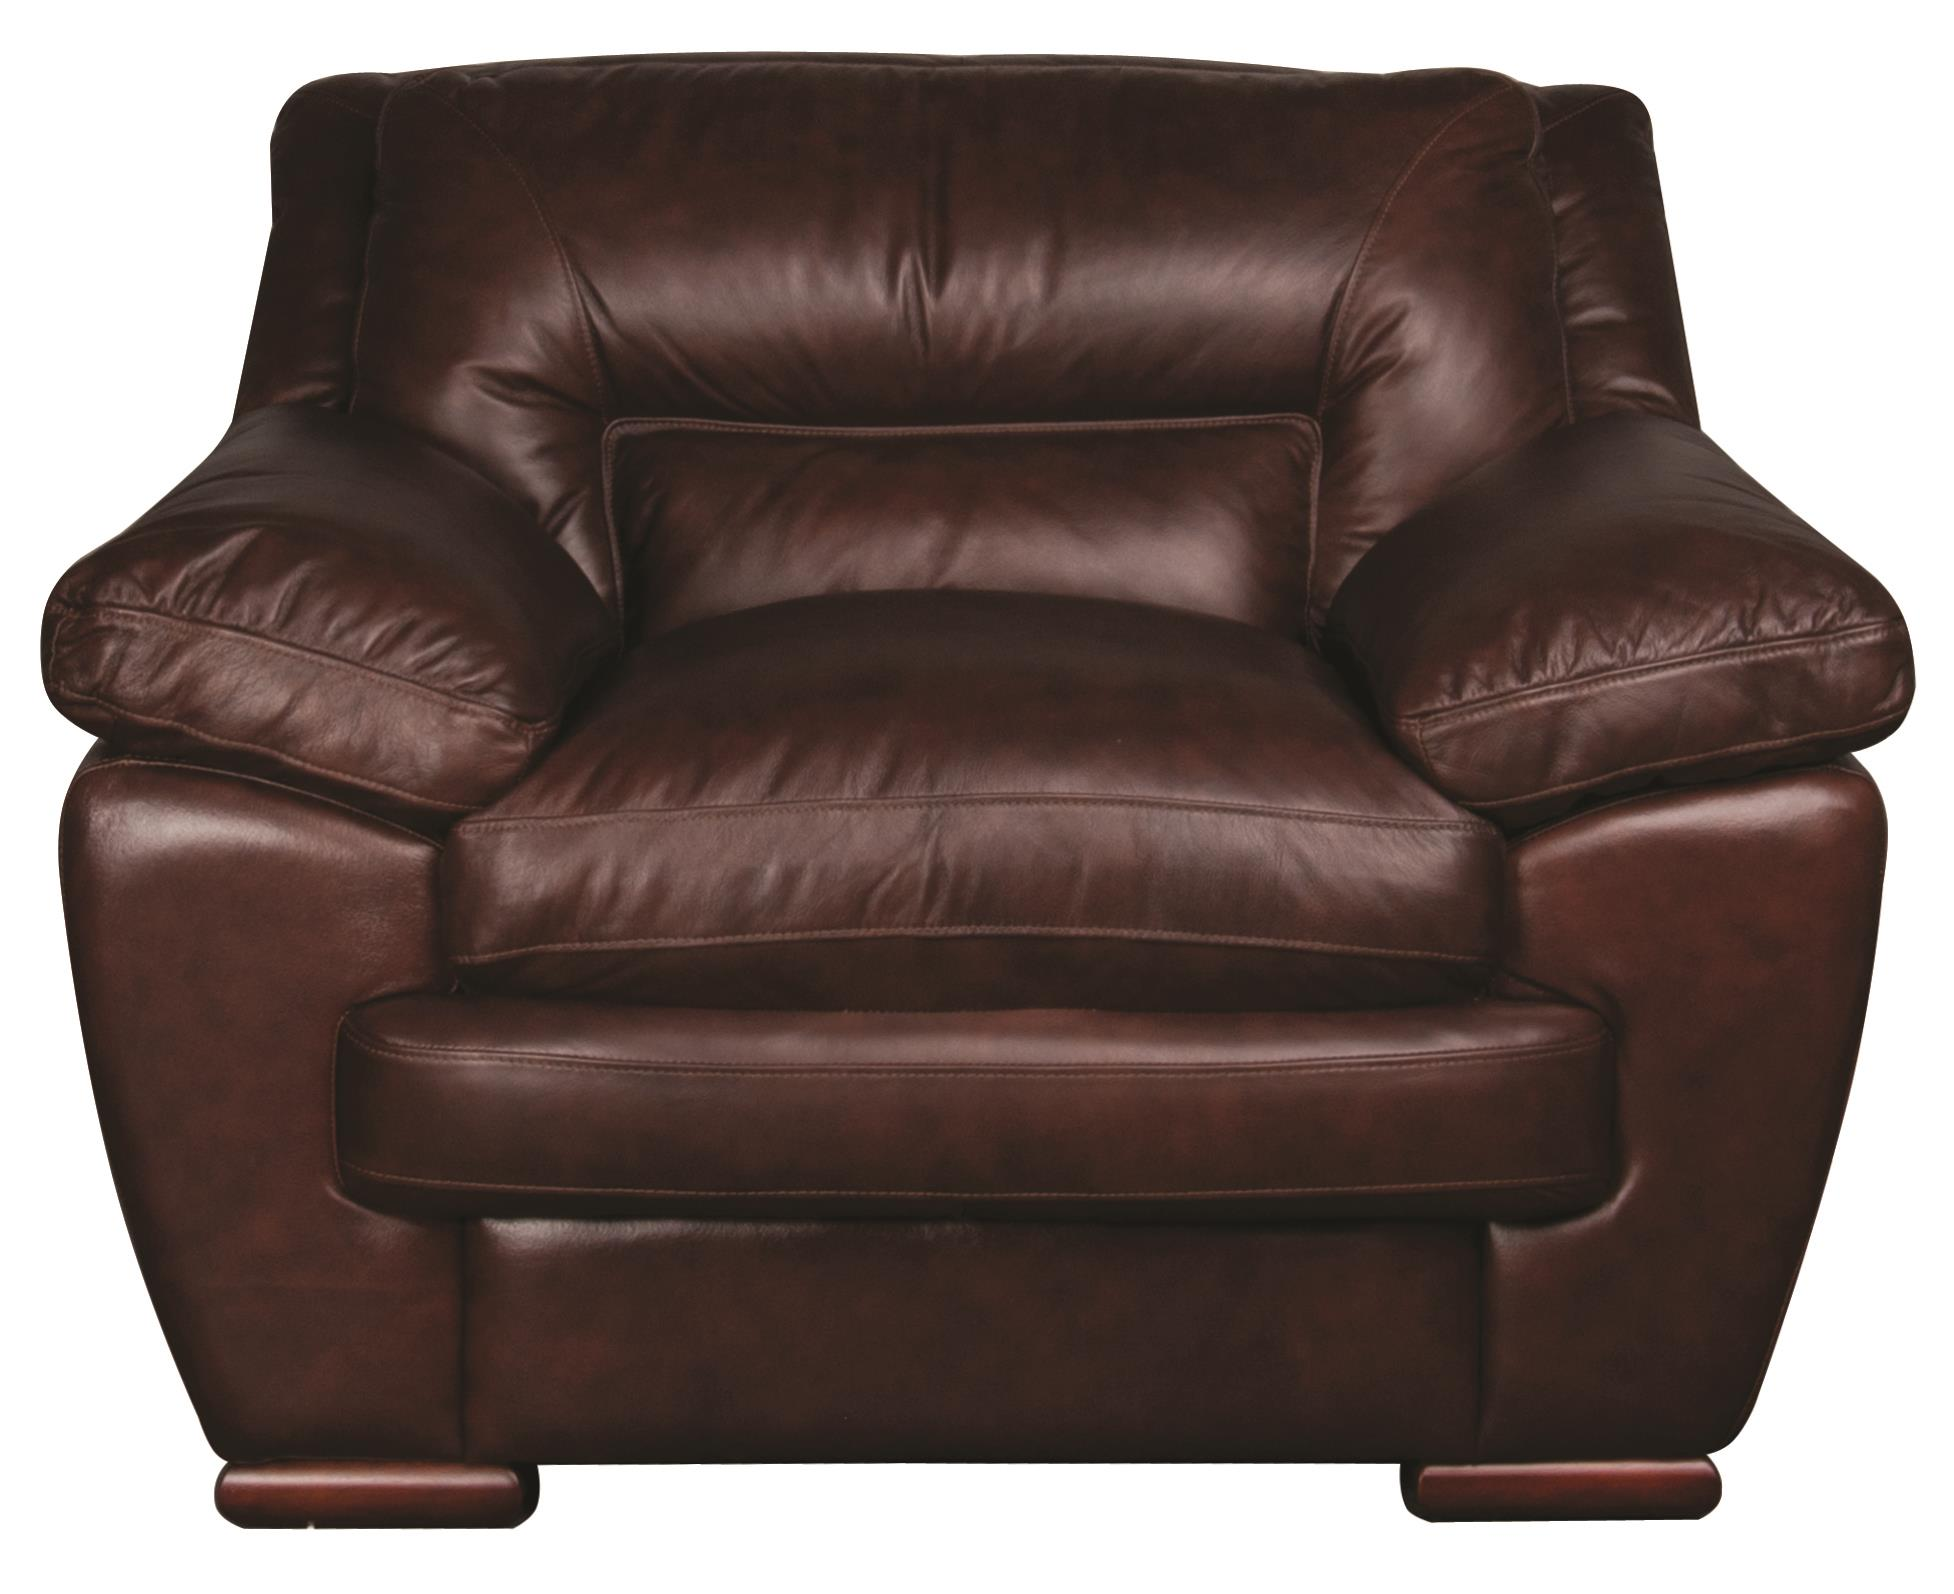 Morris Home Furnishings Austin Austin 100% Leather Chair - Item Number: 113826258